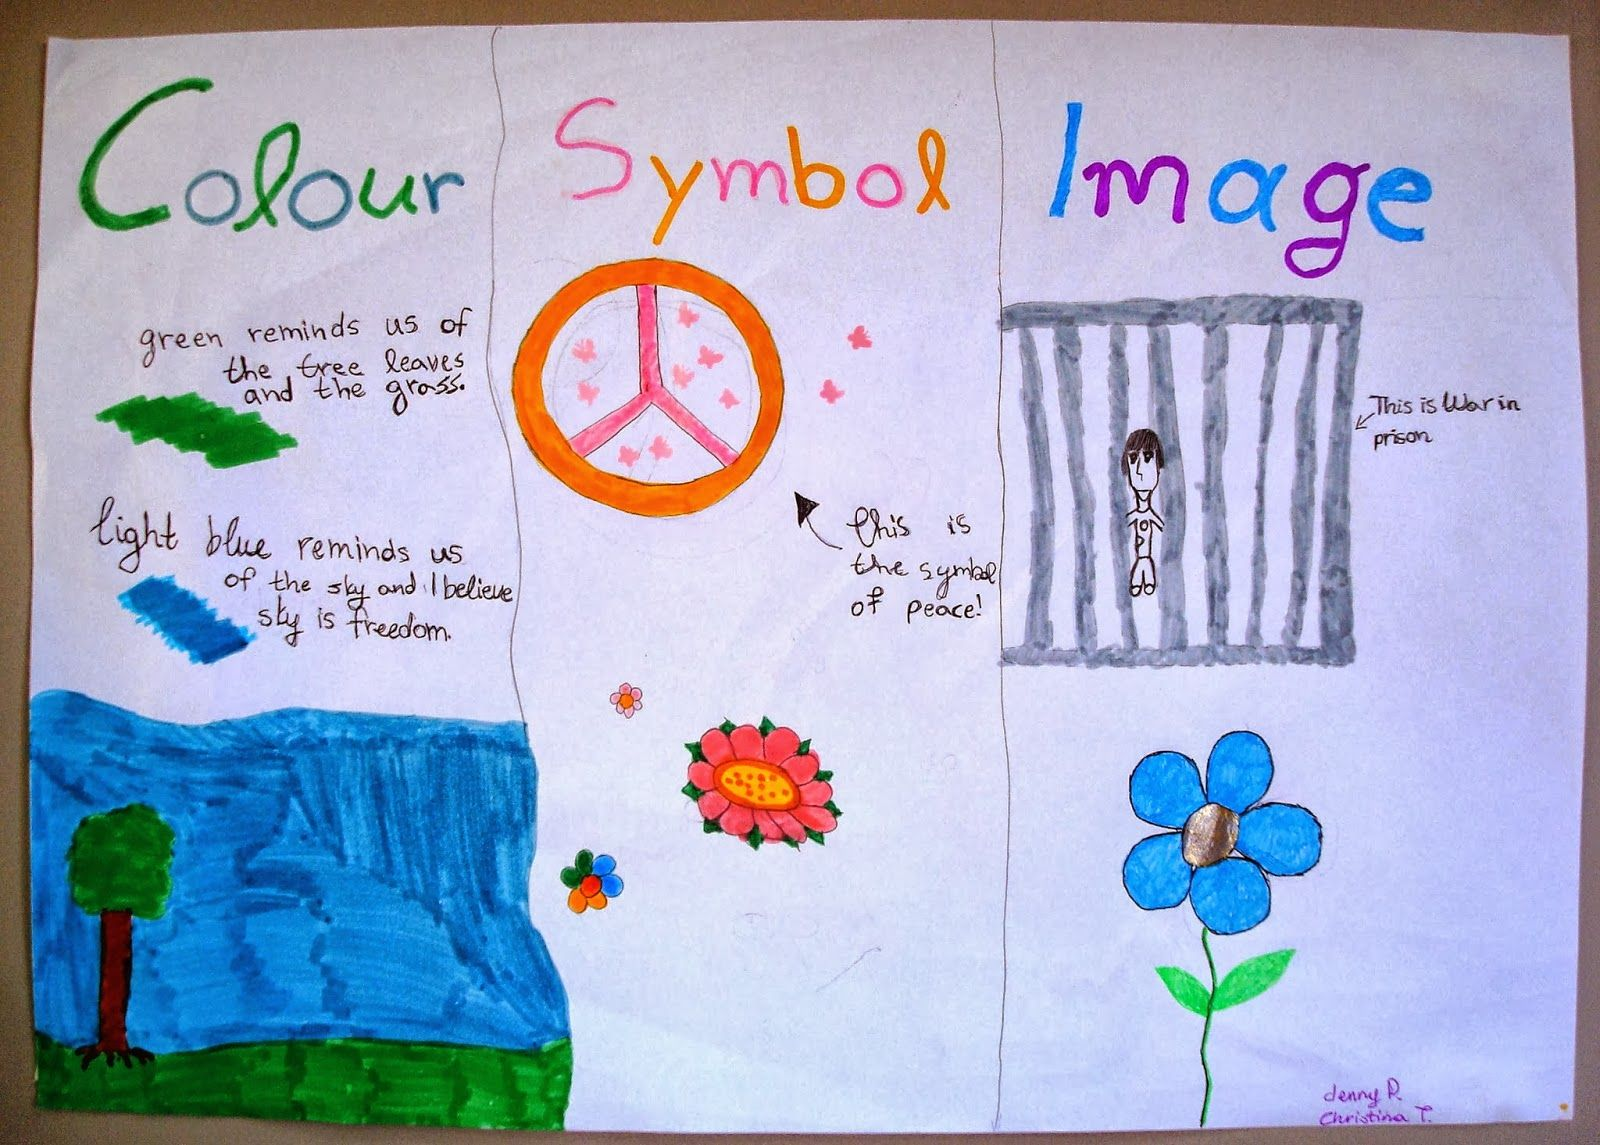 By Chrysa Papalazarou Colour Symbol Image Is A Thinking